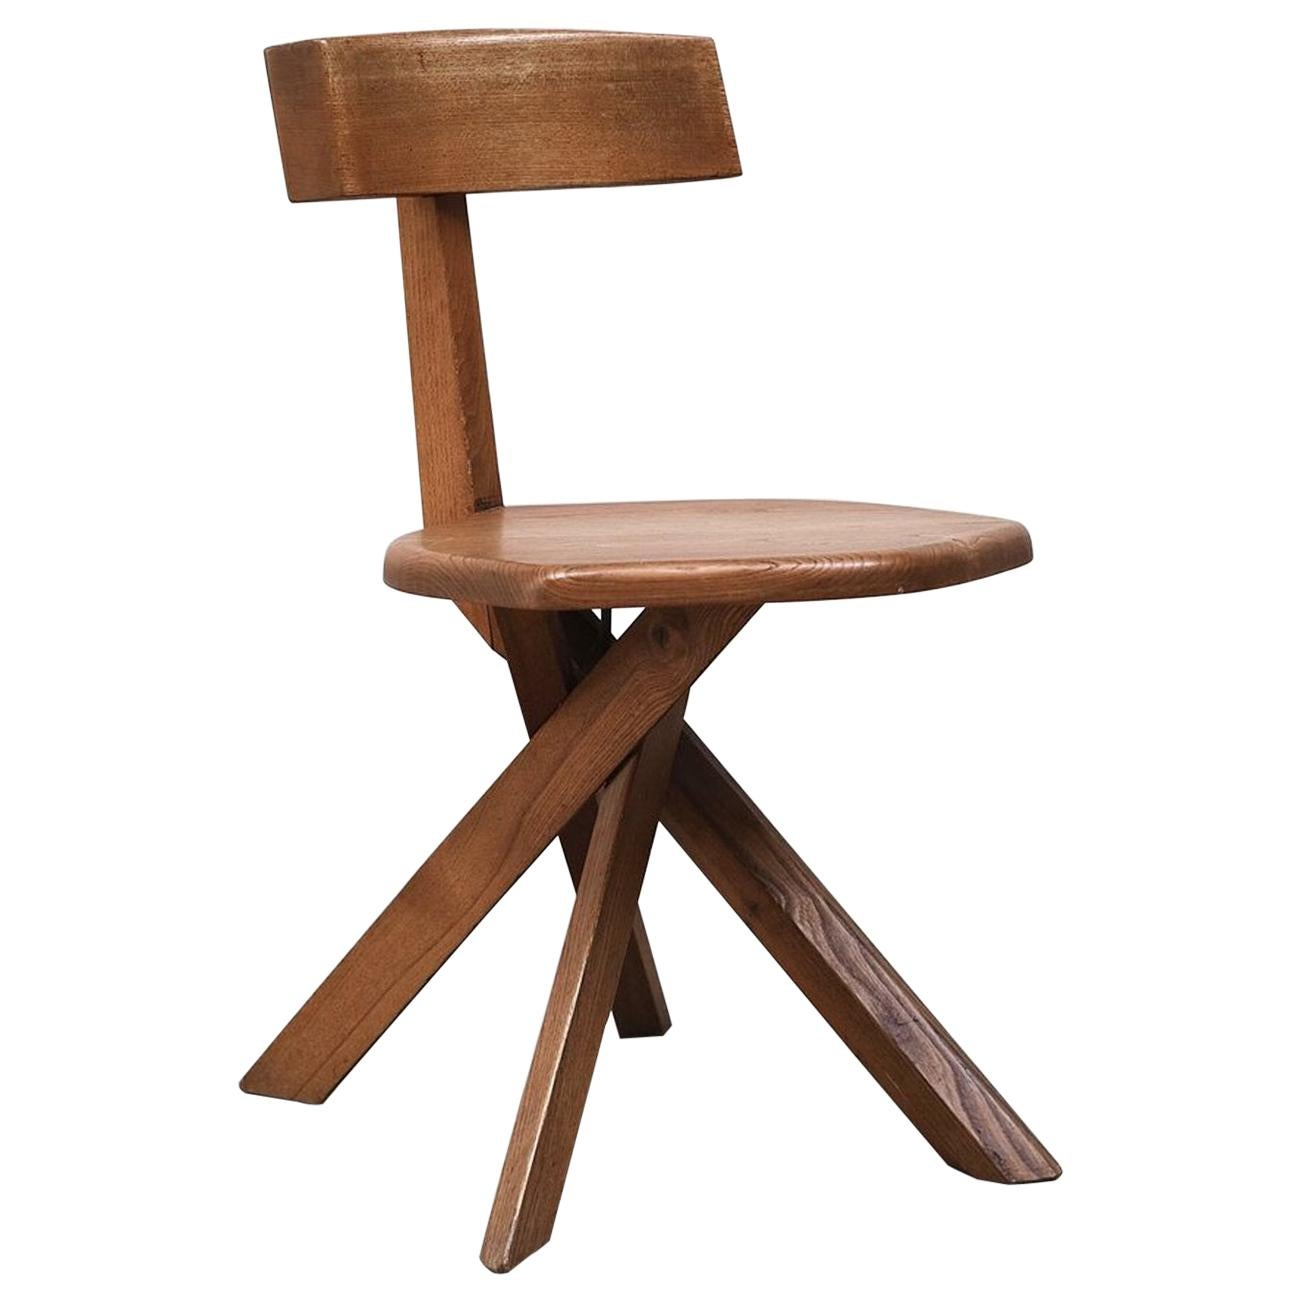 Pierre Chapo S34 Dining Chair in Solid Elm, 1960s